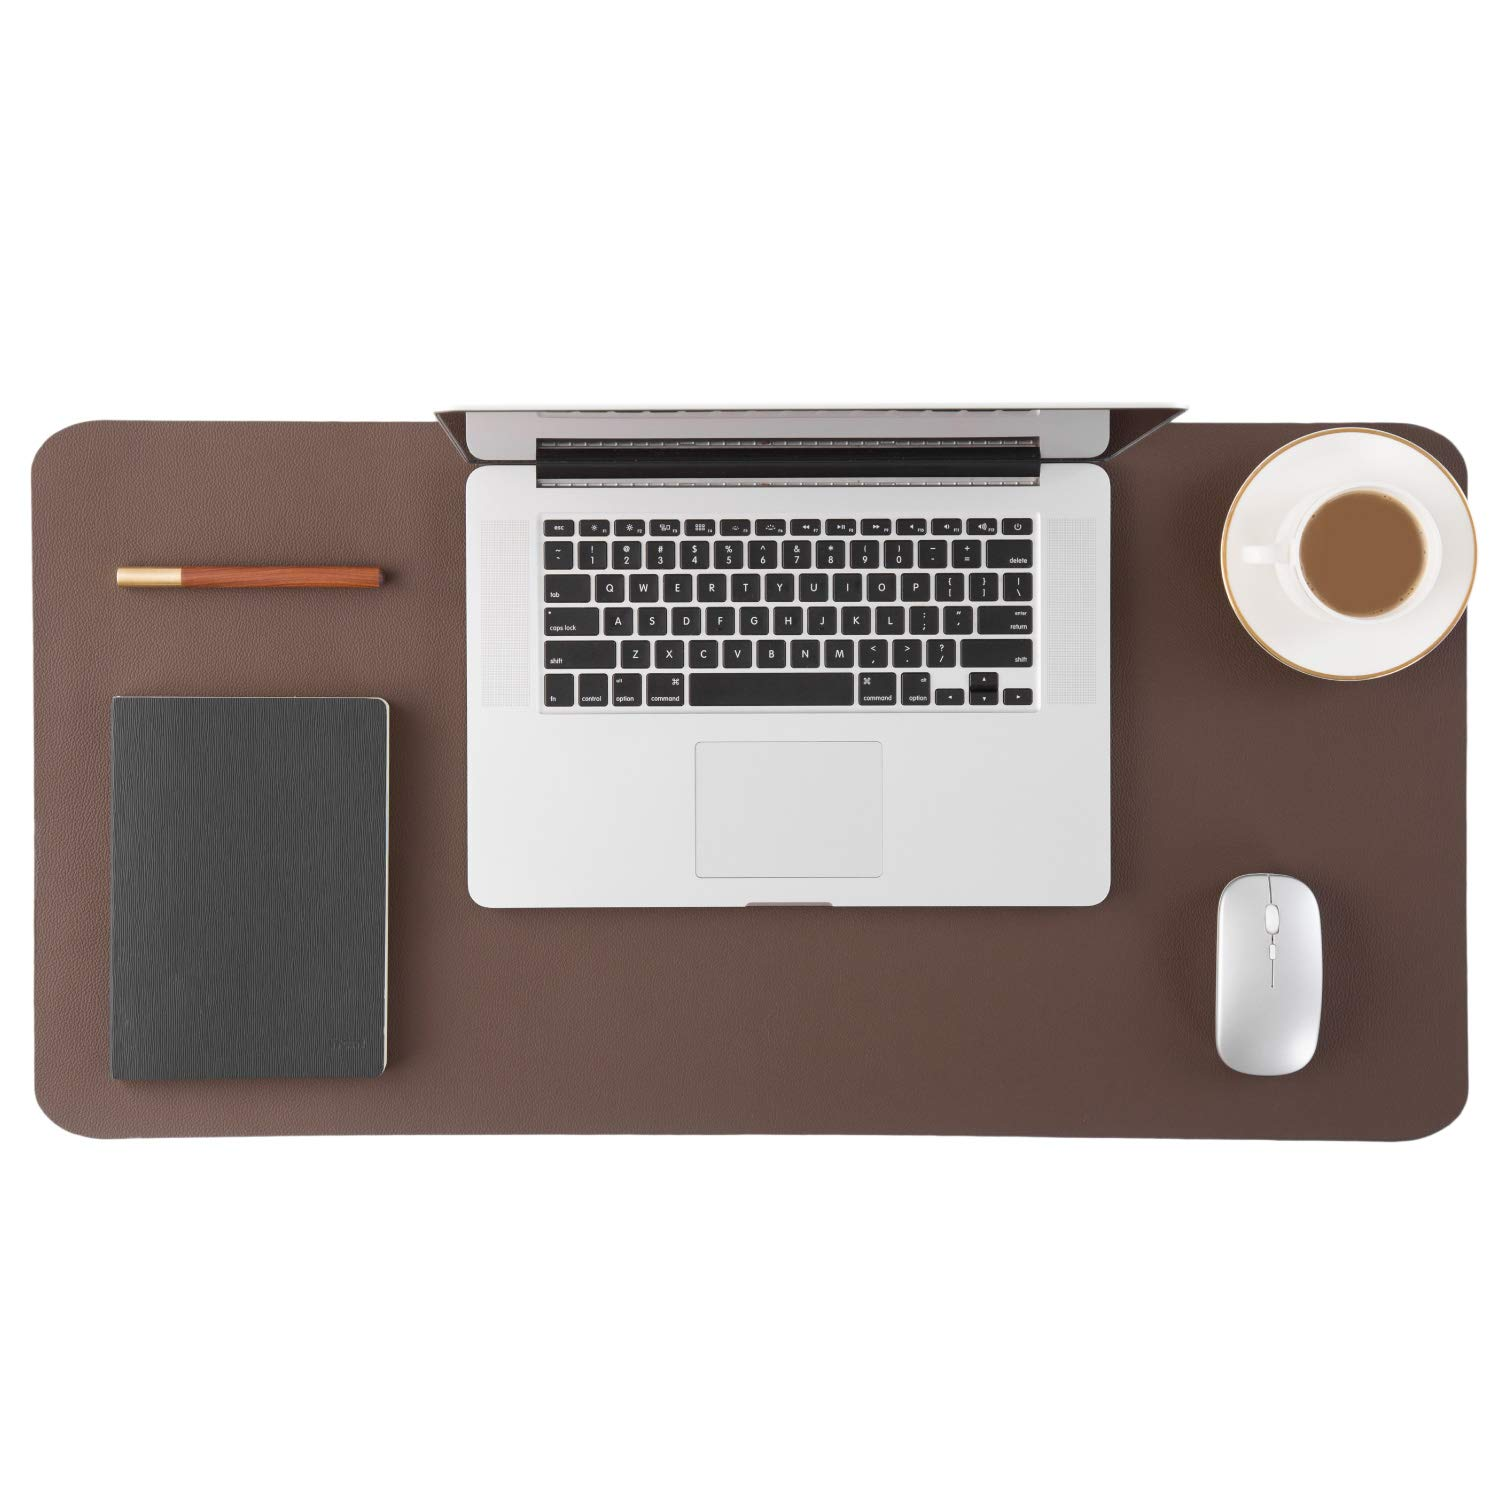 Bedsure Genuine Leather Desk Pad, Office Desk Mat Blotter on top of desks, Large Computer Desk Mat, Waterproof Non Slip Desk Pad Protector for Office and Home (Brown, 15.7x31.5 inches)